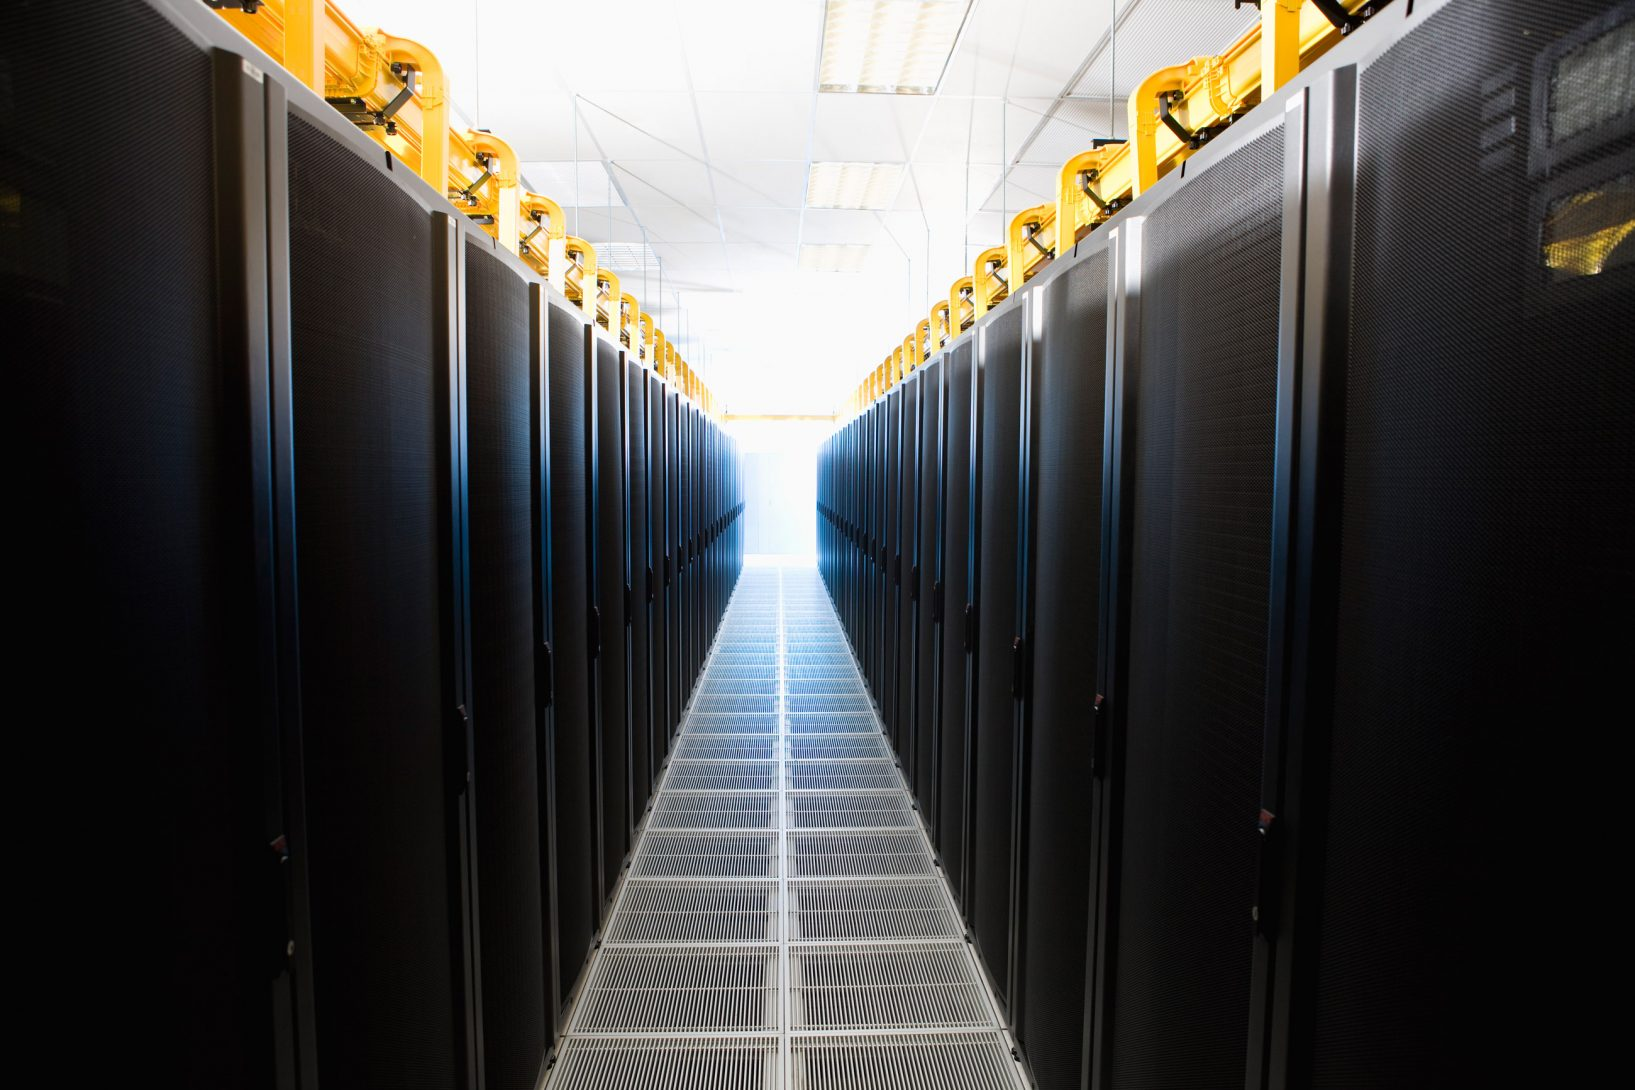 SAP Opens Its First Data Center In The UAE